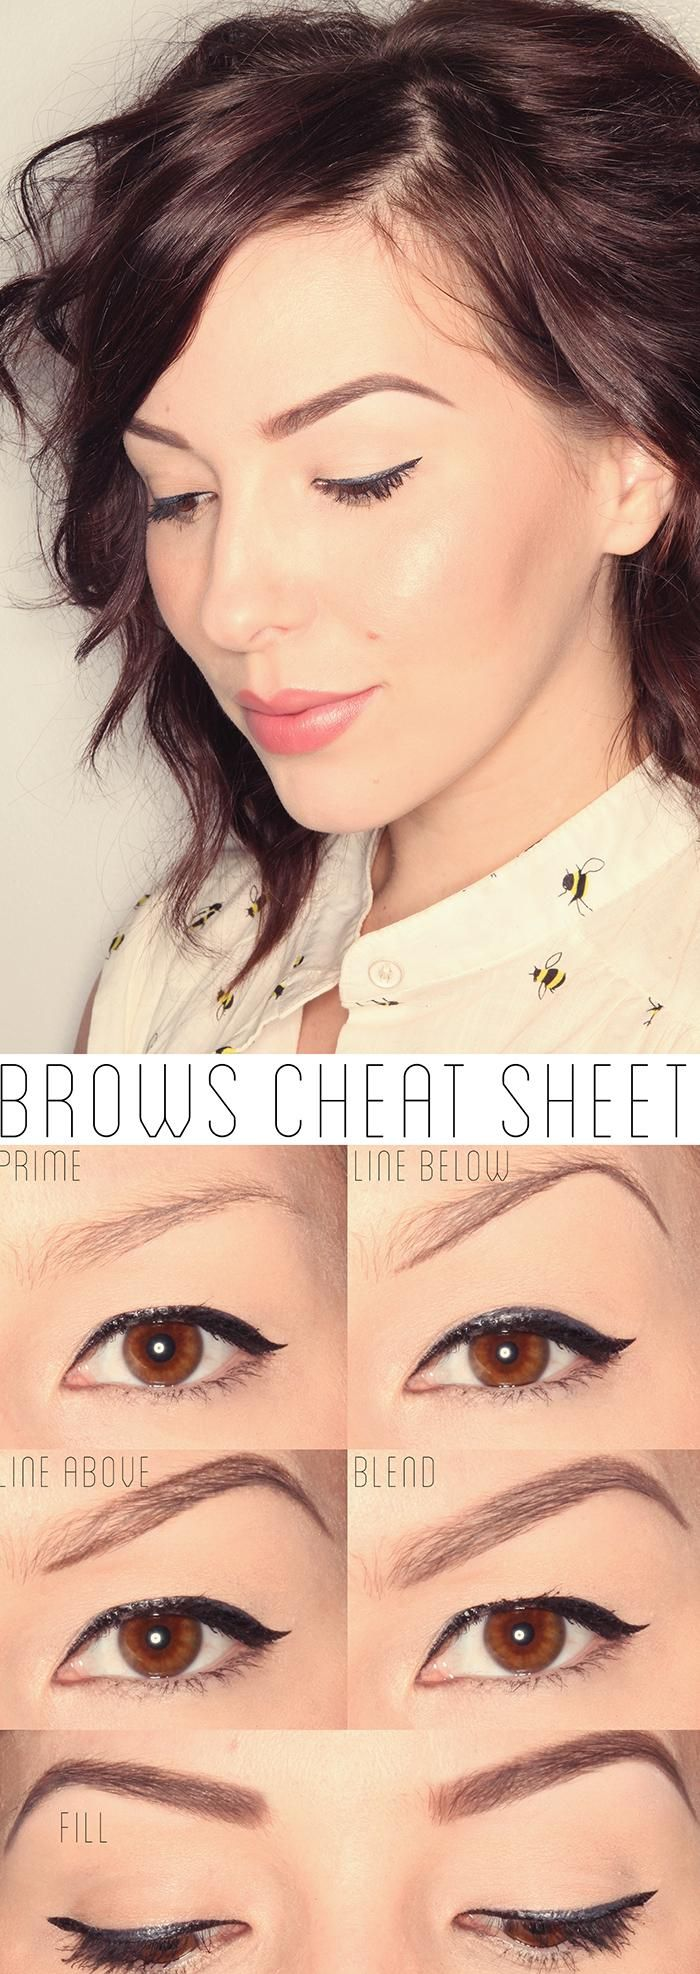 Perfect Brows Are A Cinch With This Cheat Sheet Salon At Home - 21 girls forgotten eyebrows look like